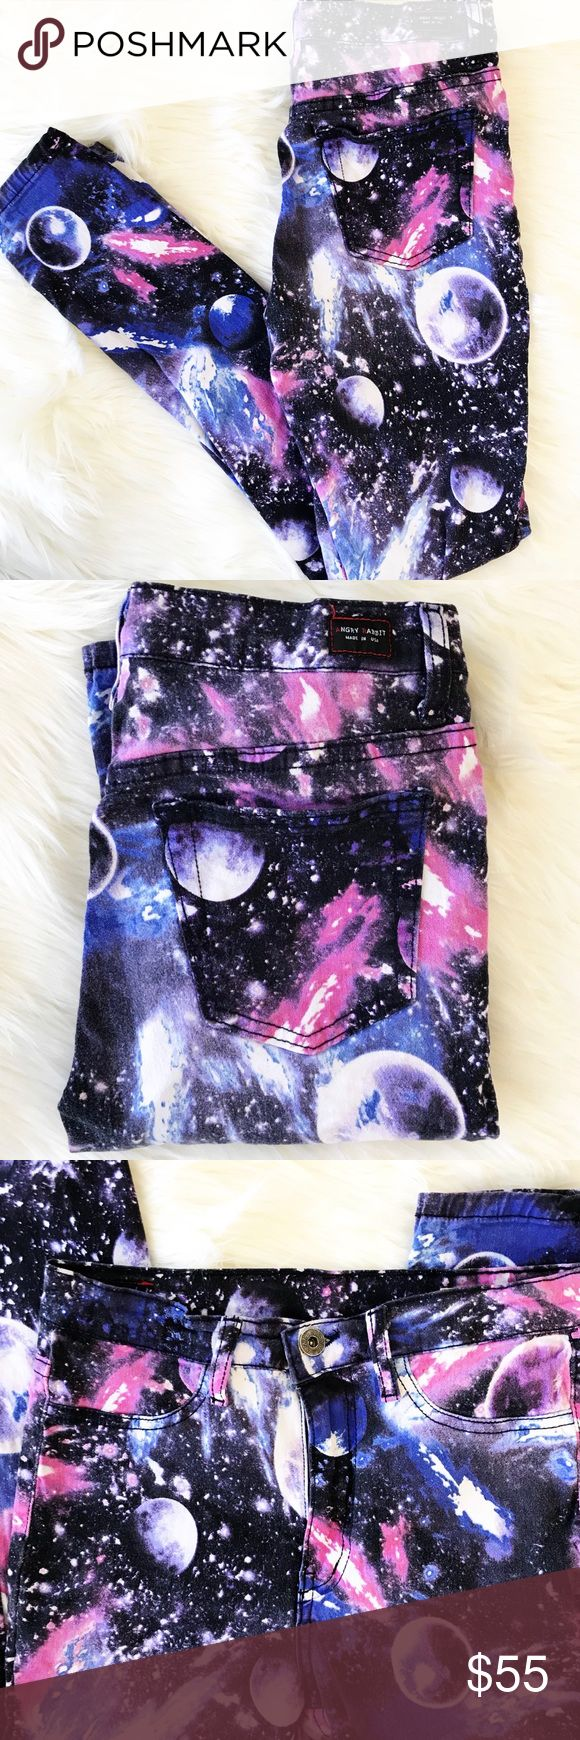 Angry Rabbit : Galaxy Printed Skinny Jeans 98% Cotton, 2% Spandex skinny jeans. All over galaxy print. Size 28. No holds or trades. Bundle to save. Open to offers! Angry Rabbit Jeans Skinny